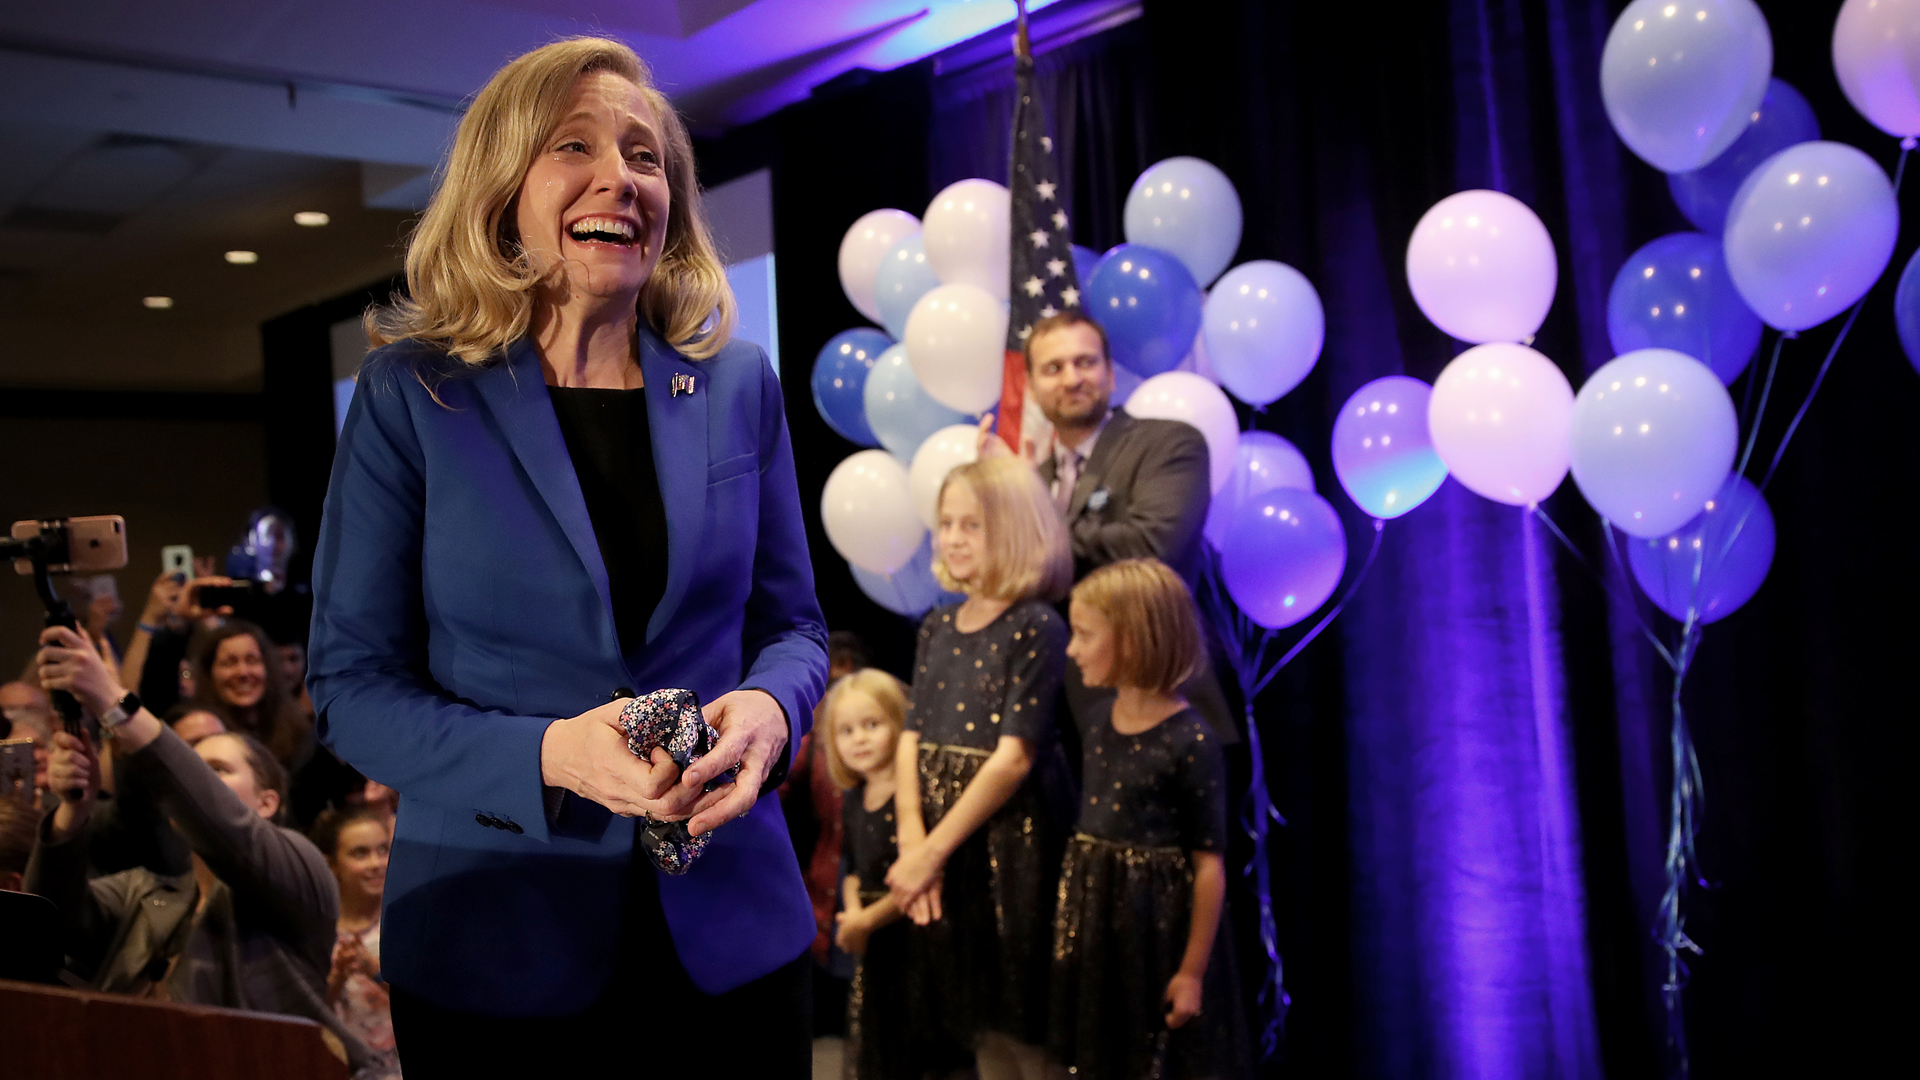 Abigail Spanberger thanks supporters at an election night rally Nov. 6, 2018, in Richmond, Virginia. Spanberger declared victory over Rep. Dave Brat (R-VA) in their race for a seat that has been under Republican control since 1968. (Credit: Win McNamee/Getty Images)